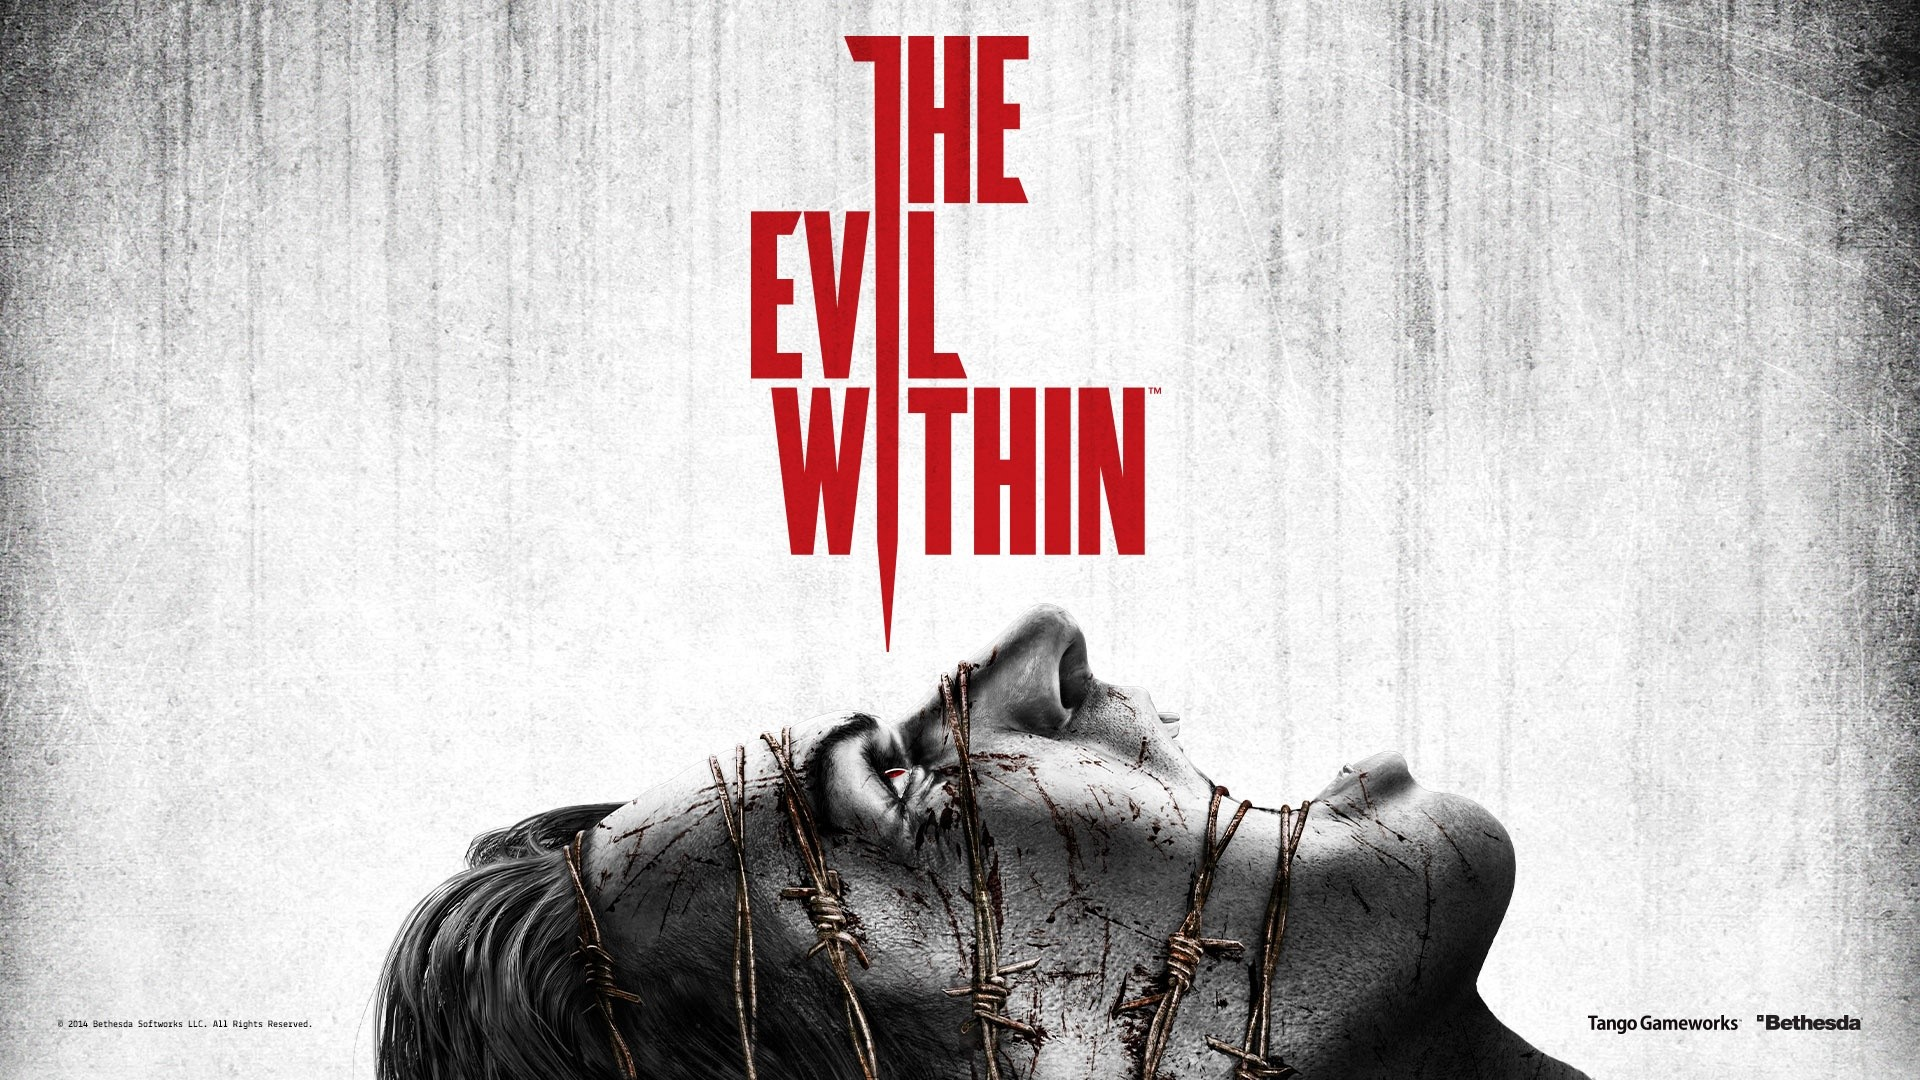 Wallpaper The evil within Images